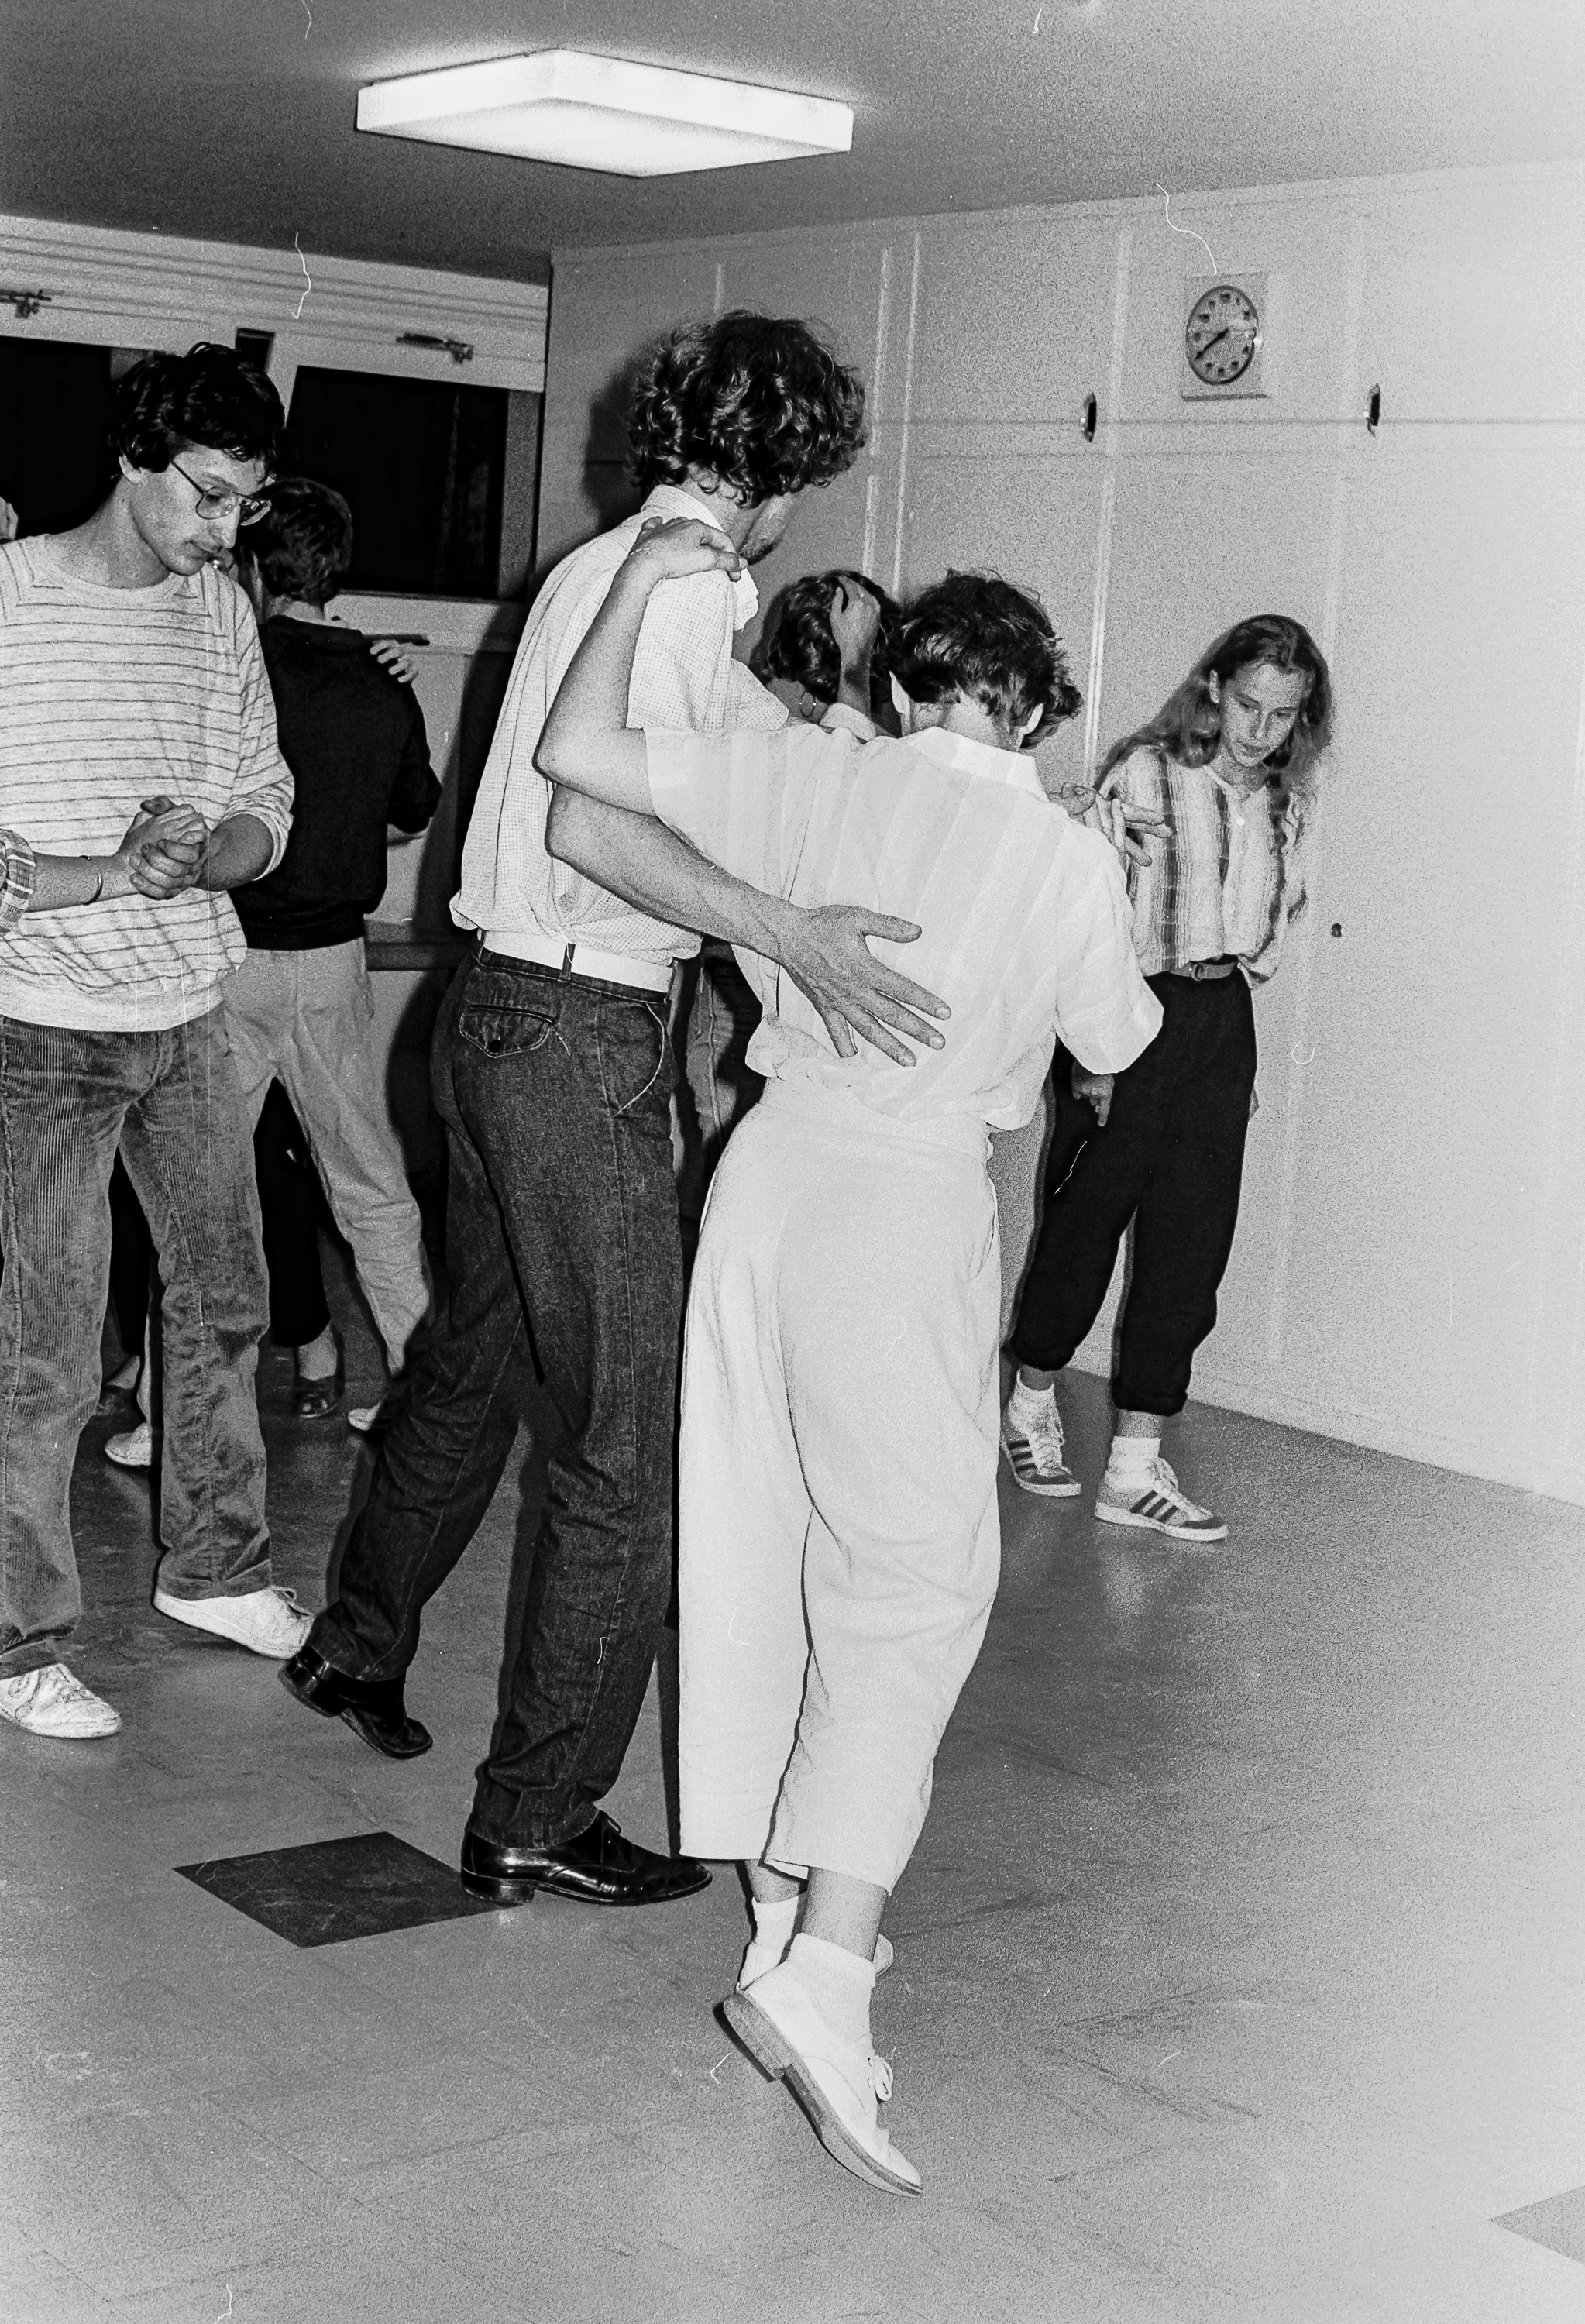 1985-05-danse-de-salon_03